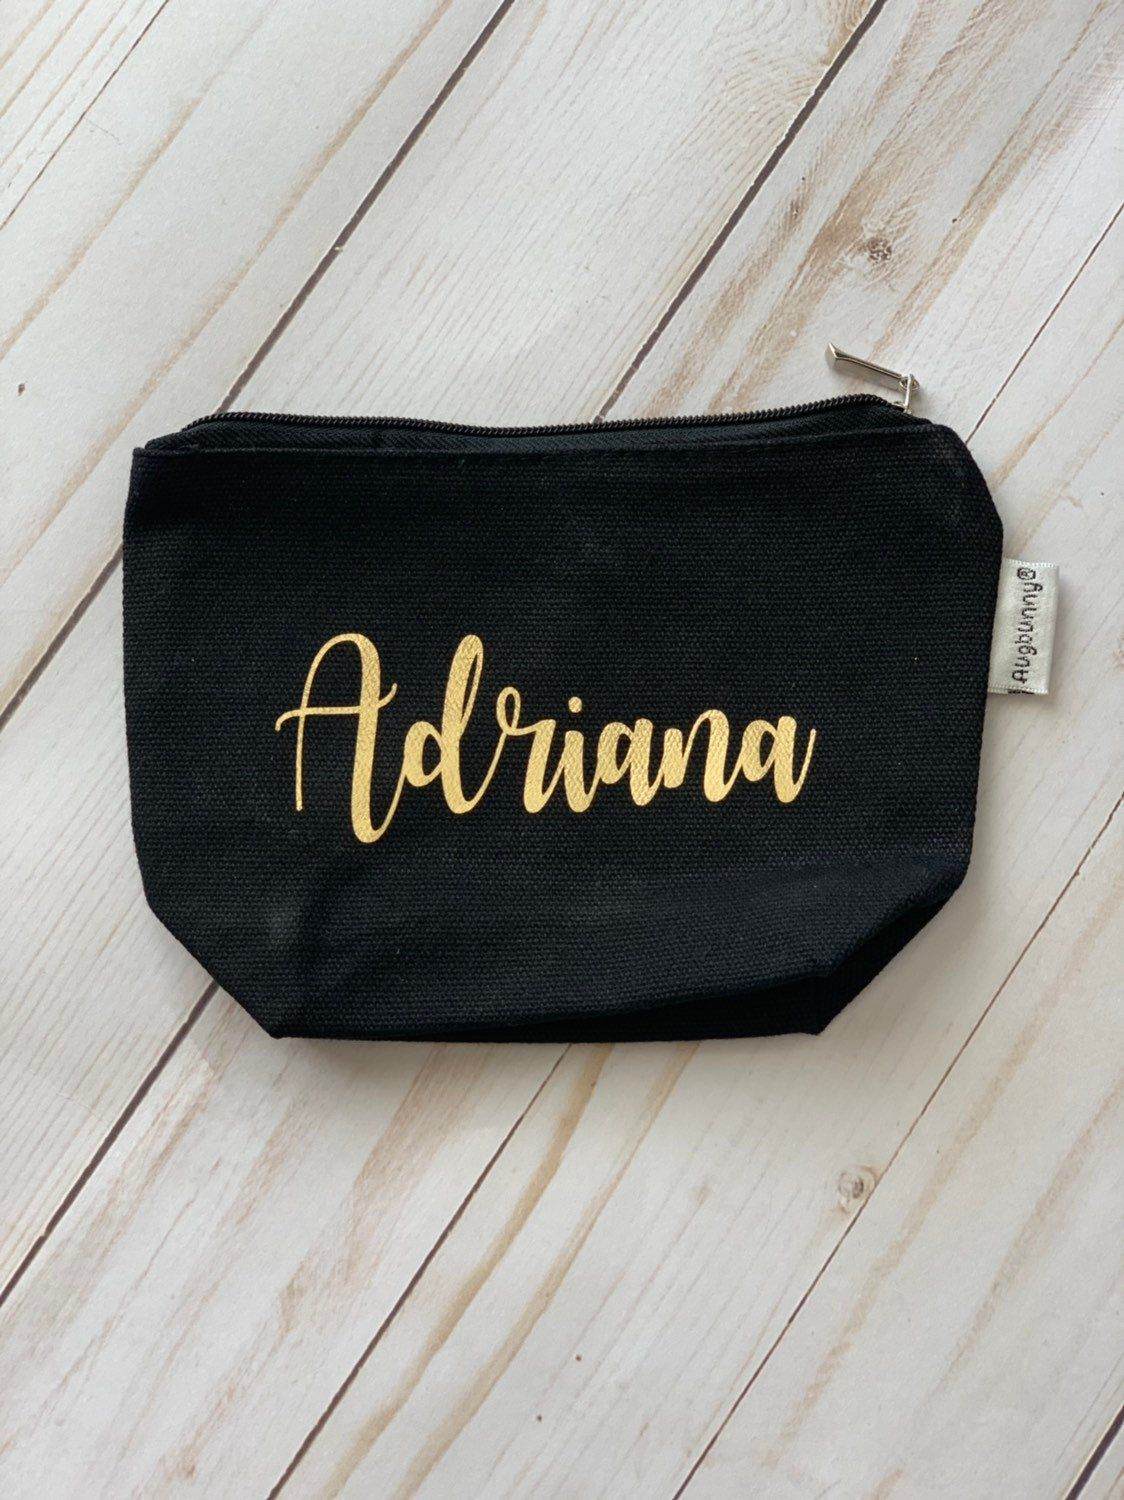 Personalized Makeup Pouch Makeup Bag With Names Etsy Personalized Cosmetic Bags Cosmetic Bag Gift Makeup Pouch